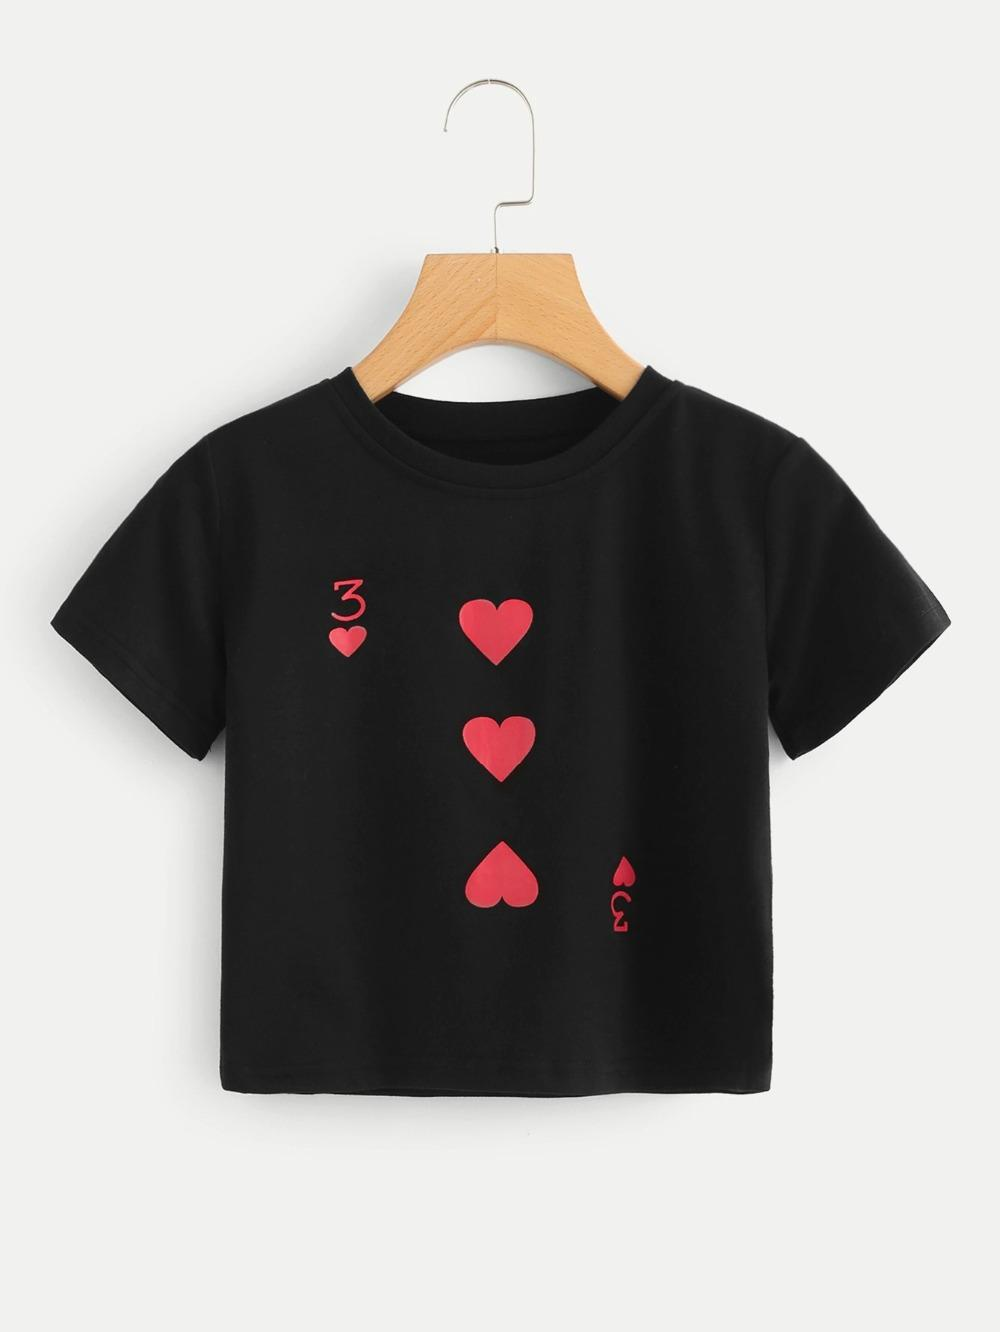 ef147fd2e173 Red Peach 3 T Shirt Funny Poker Funny Graphic Women Fashion Tees Short Sexy  Aesthetic Tumblr Tops Grunge Goth Vintage Shirt Funny T Shirt Prints Funky T  ...